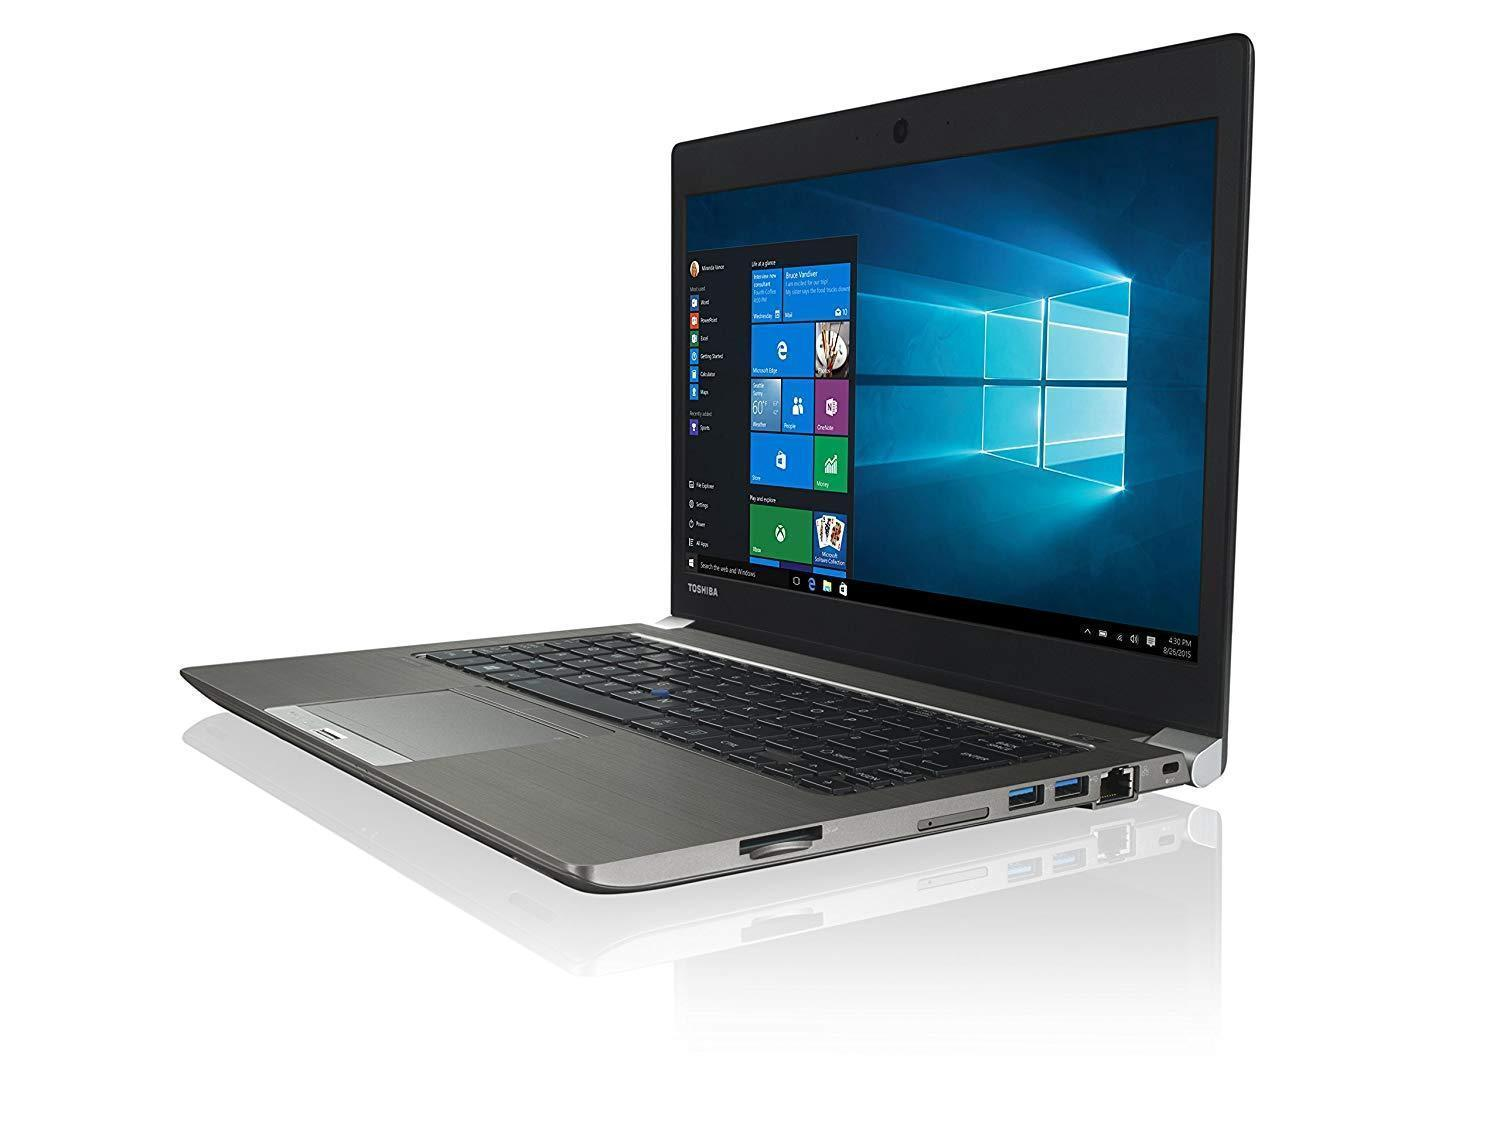 Toshiba Tecra A40-C Ex Lease Laptop Intel Core i5 6200U 2.4GHZ 16GB 1 TB HDD NEW! 14 Inch Screen WebCam Windows 10 Home